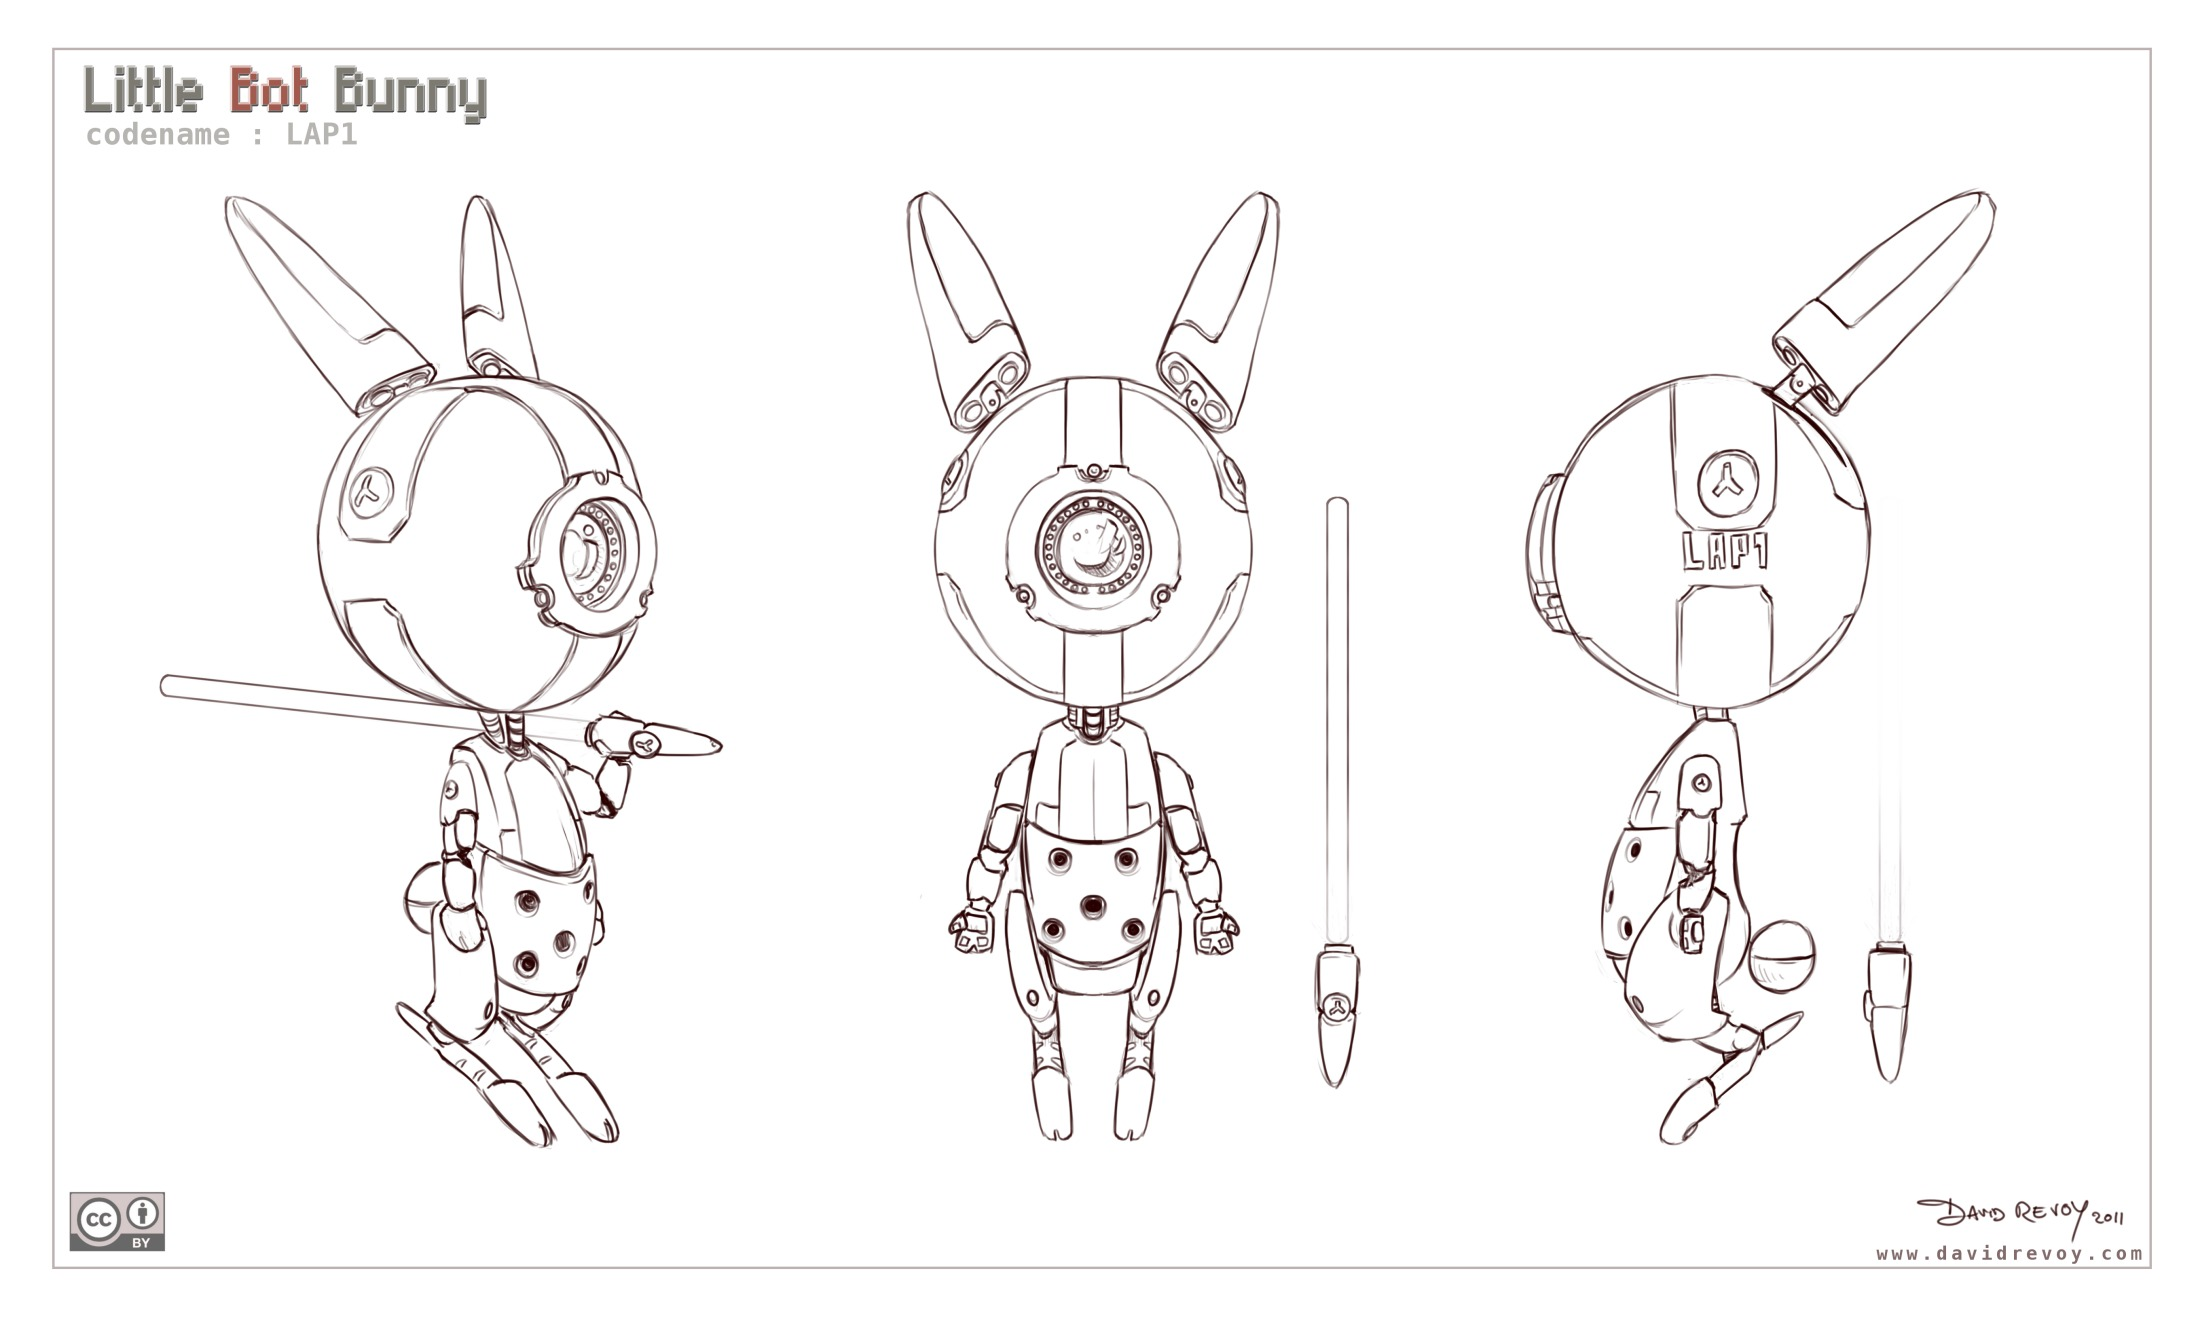 Character Design Reference Pdf : Free d model sheet little bot bunny david revoy